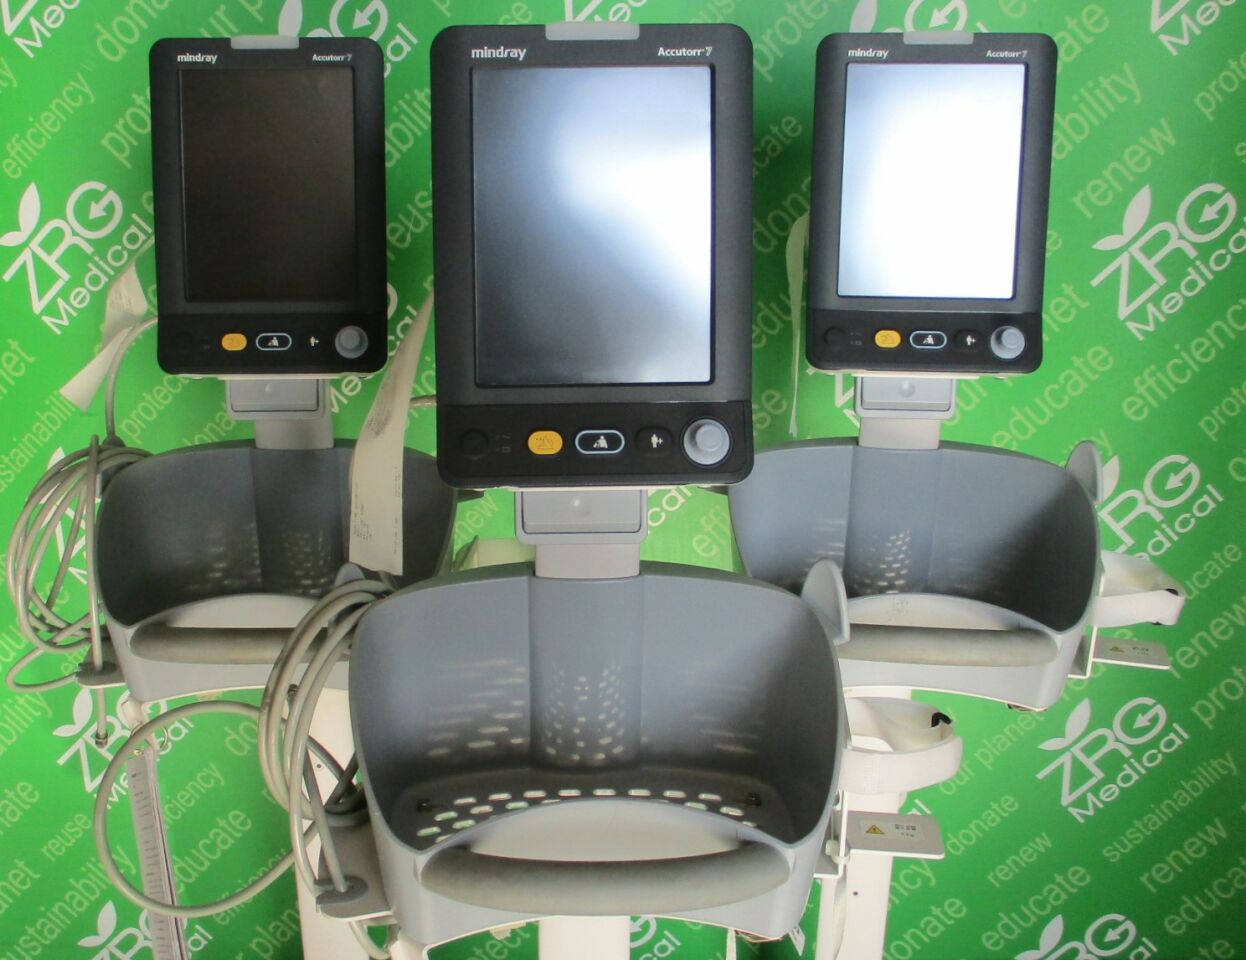 MINDRAY Accutorr 7  - Lot of 3 Monitor